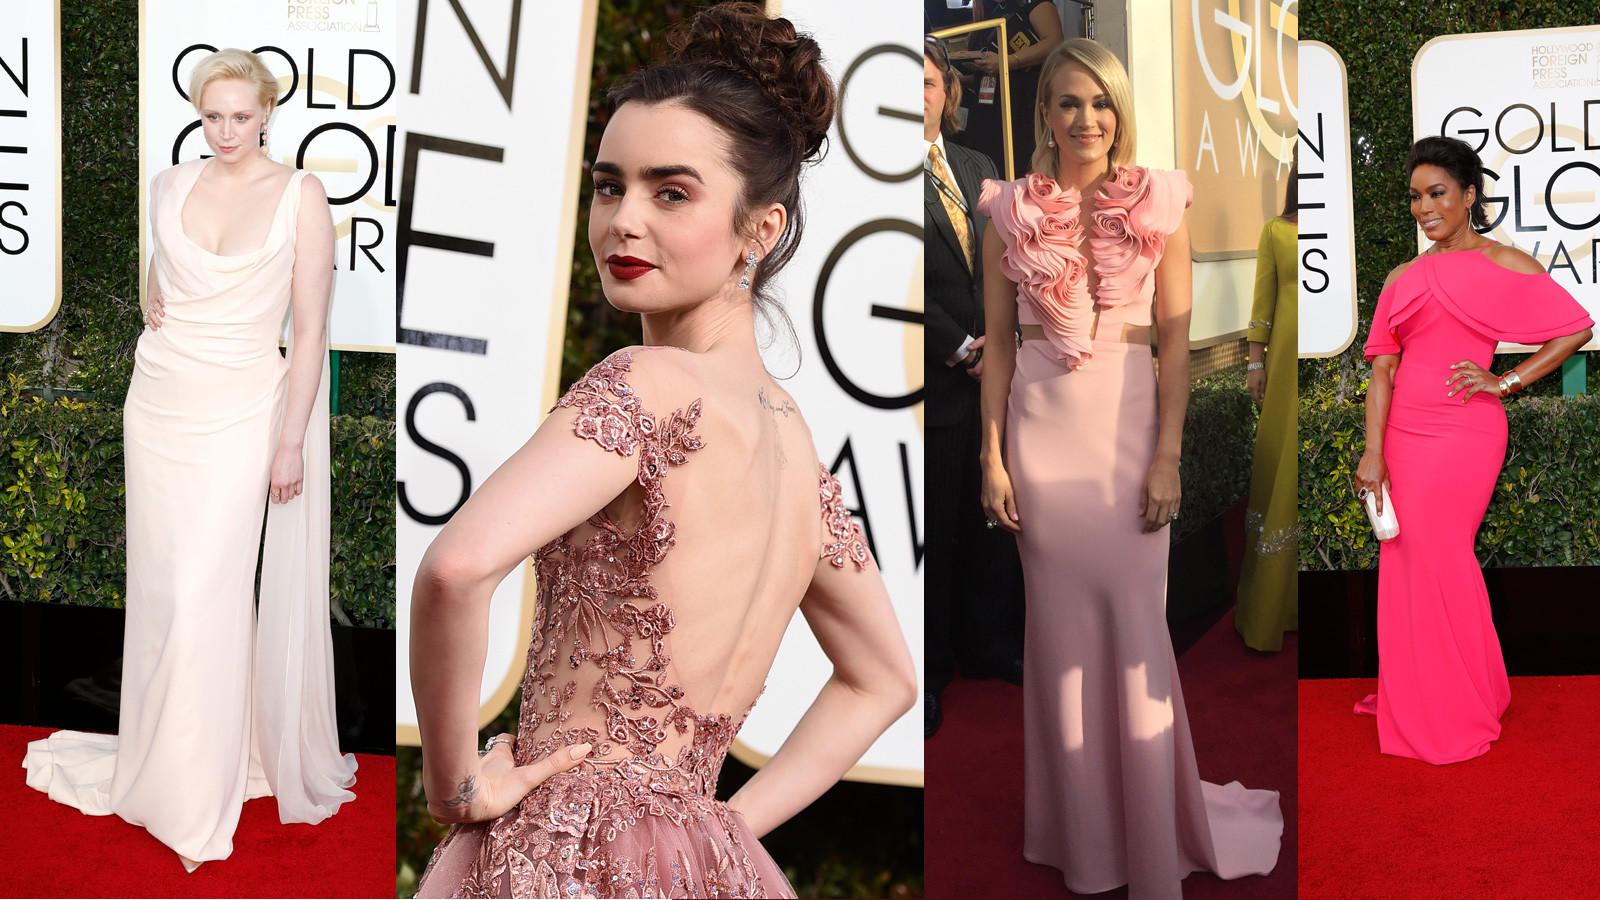 Pink is one of the major colors to pop up on the red carpet at the Golden Globes. (Strauss/Invision/AP; Jennifer Yamato / Los Angeles Times; (Jay L. Clendenin / Los Angeles Times)